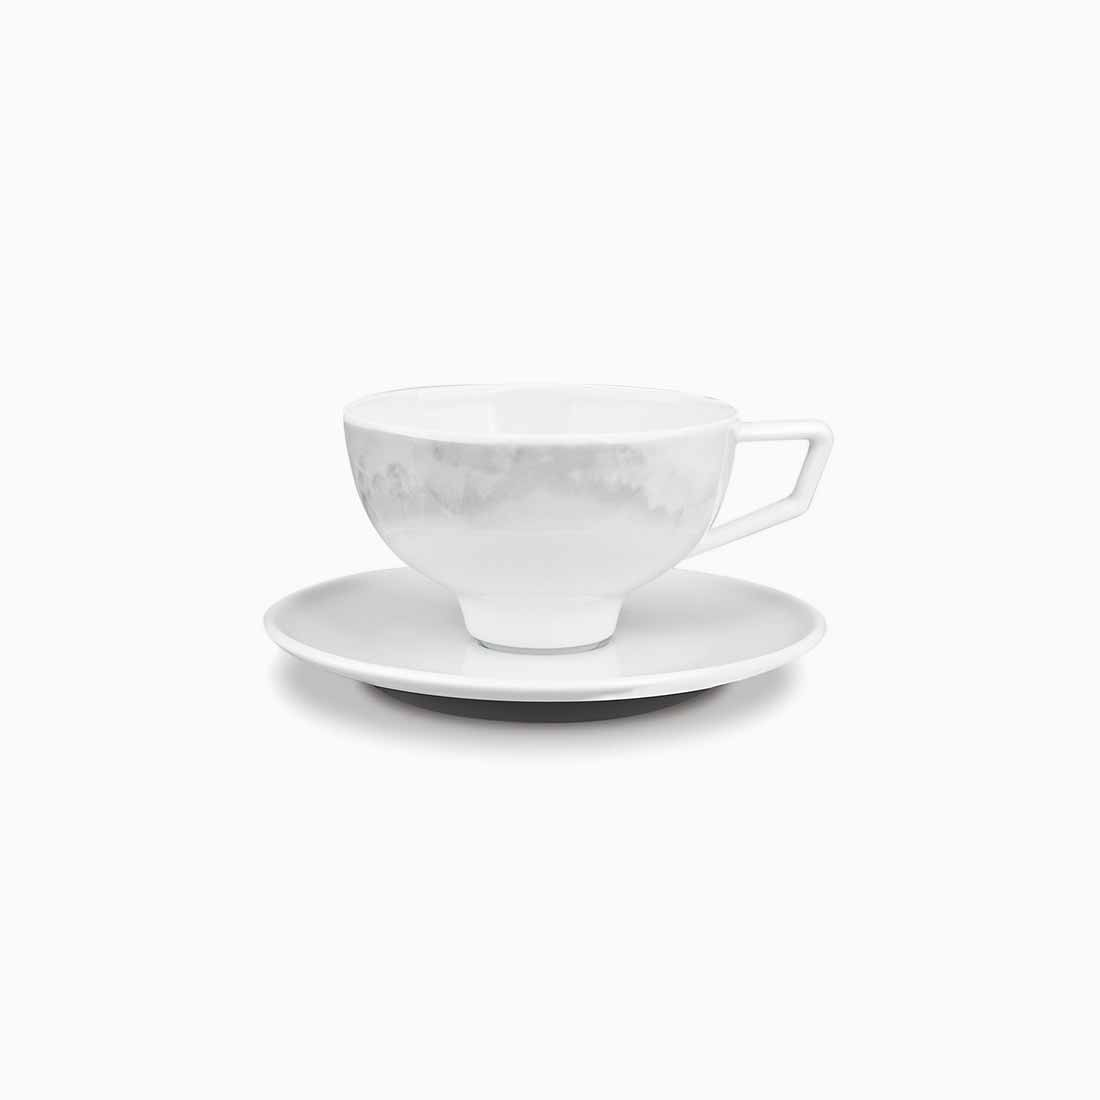 Pomona Espresso Cup and Saucer Grey Tempest by Bodo Sperlein